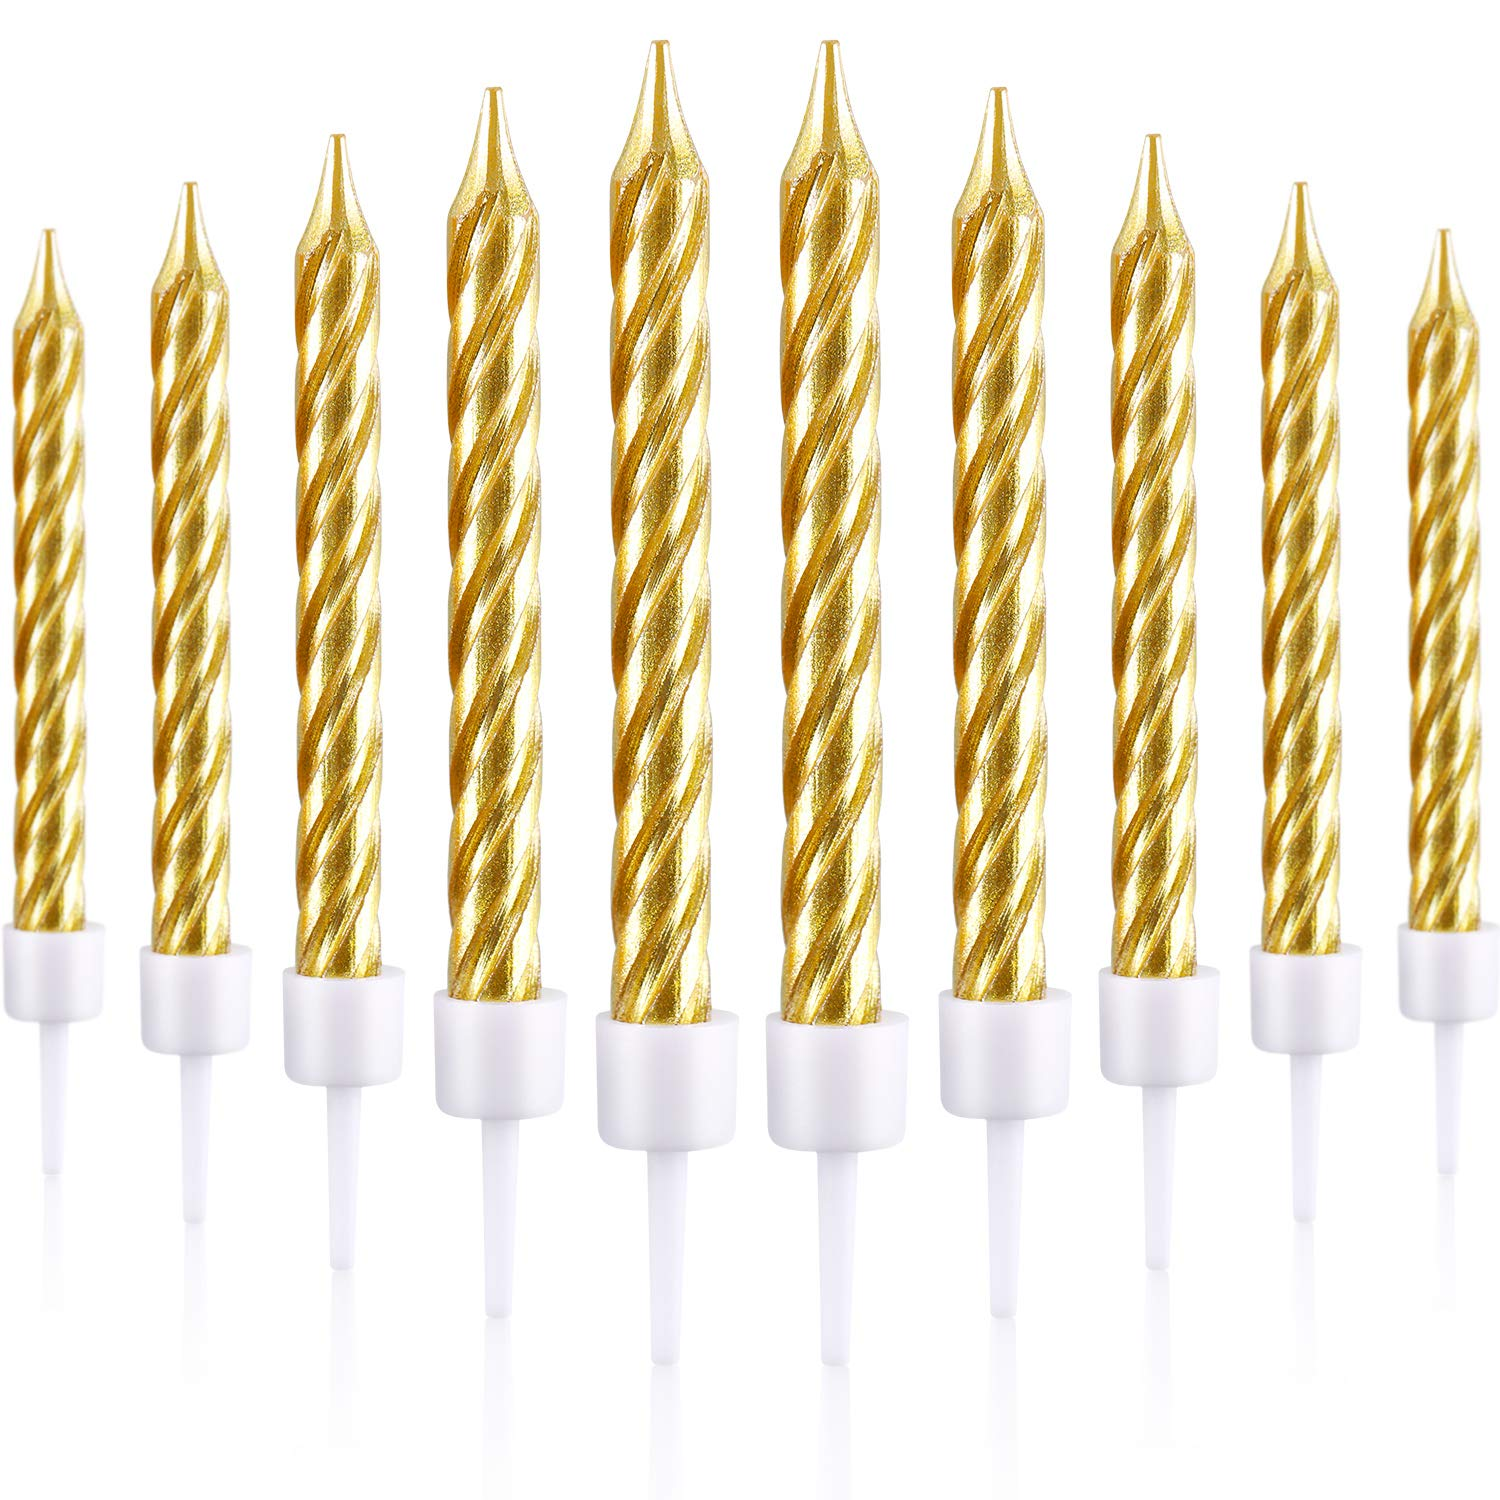 Gold Blulu 50 Pieces Cake Candles in Holders Metallic Cake Cupcake Candles Short Thin Cake Candles for Birthday Wedding Party Cake Decorations